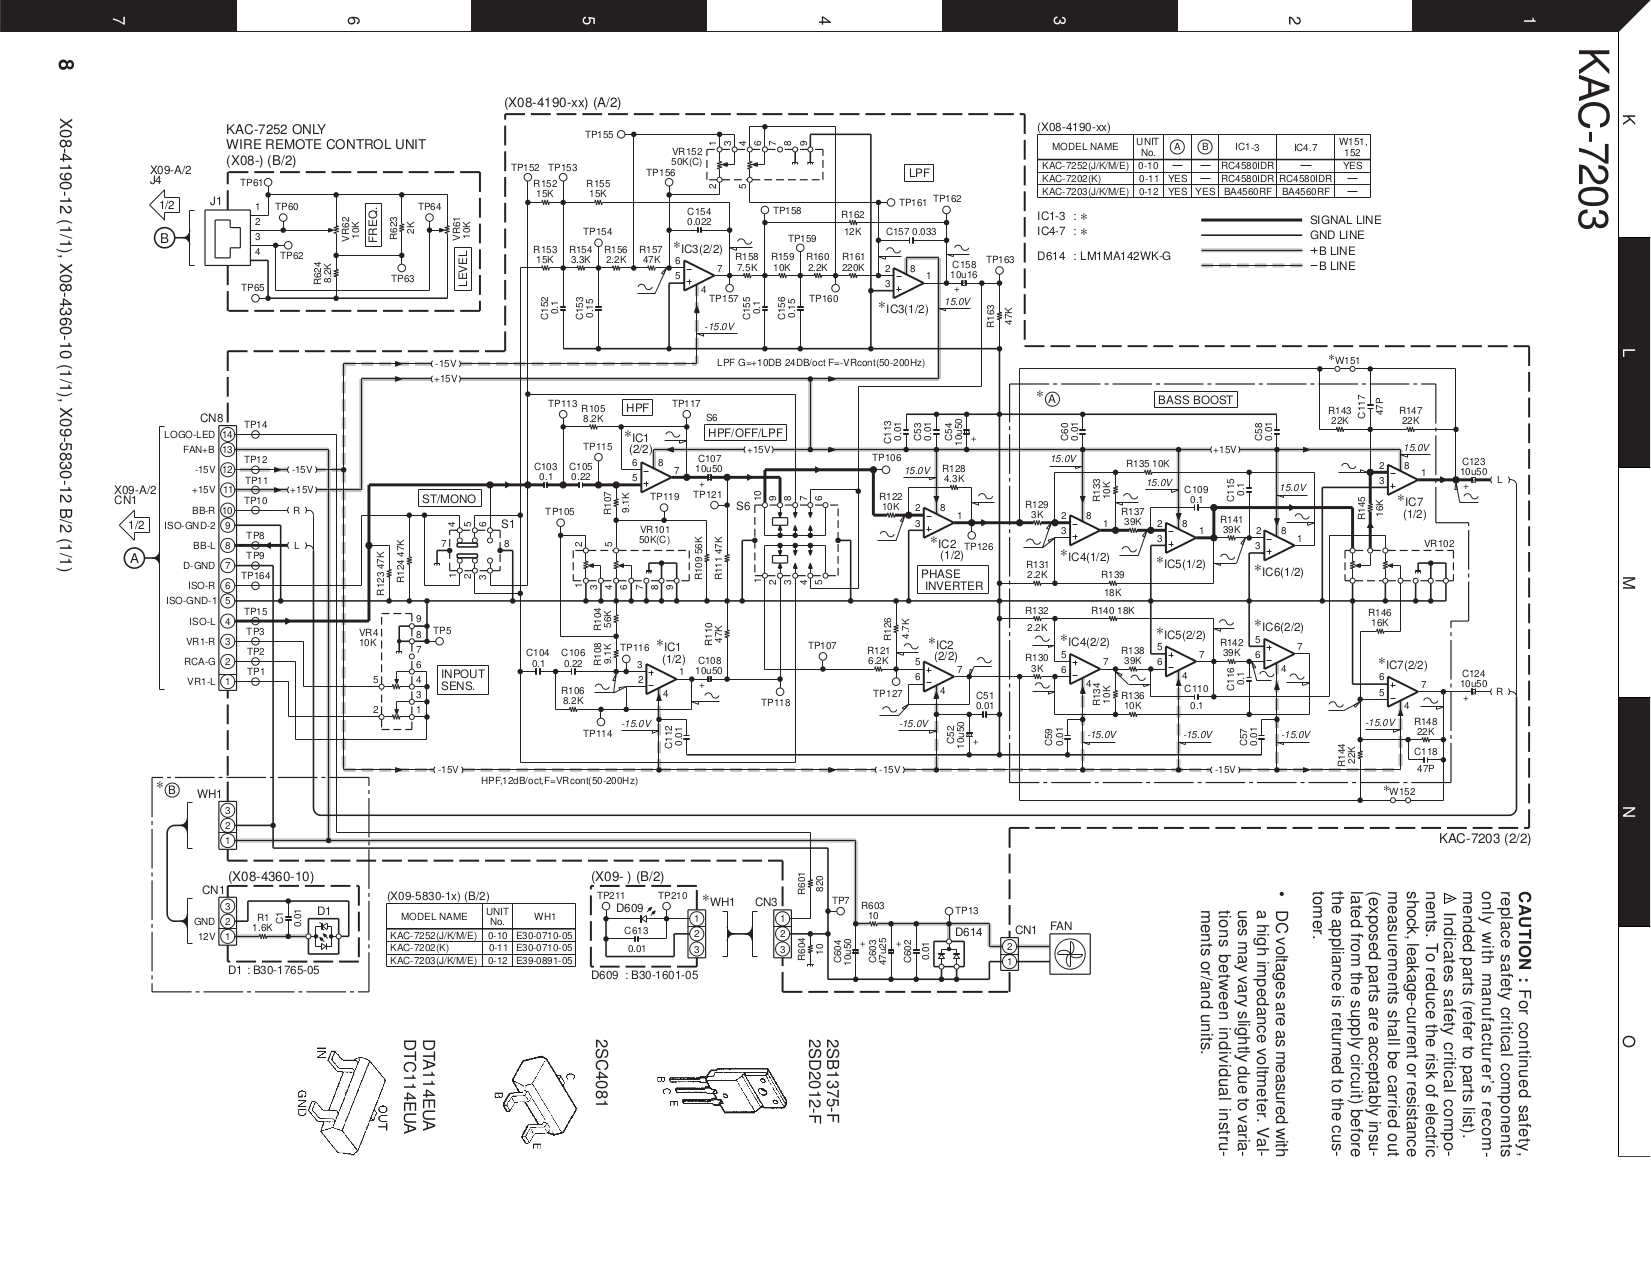 Kenwood Dnx8120 Wiring Diagram from srv2.umlib.com